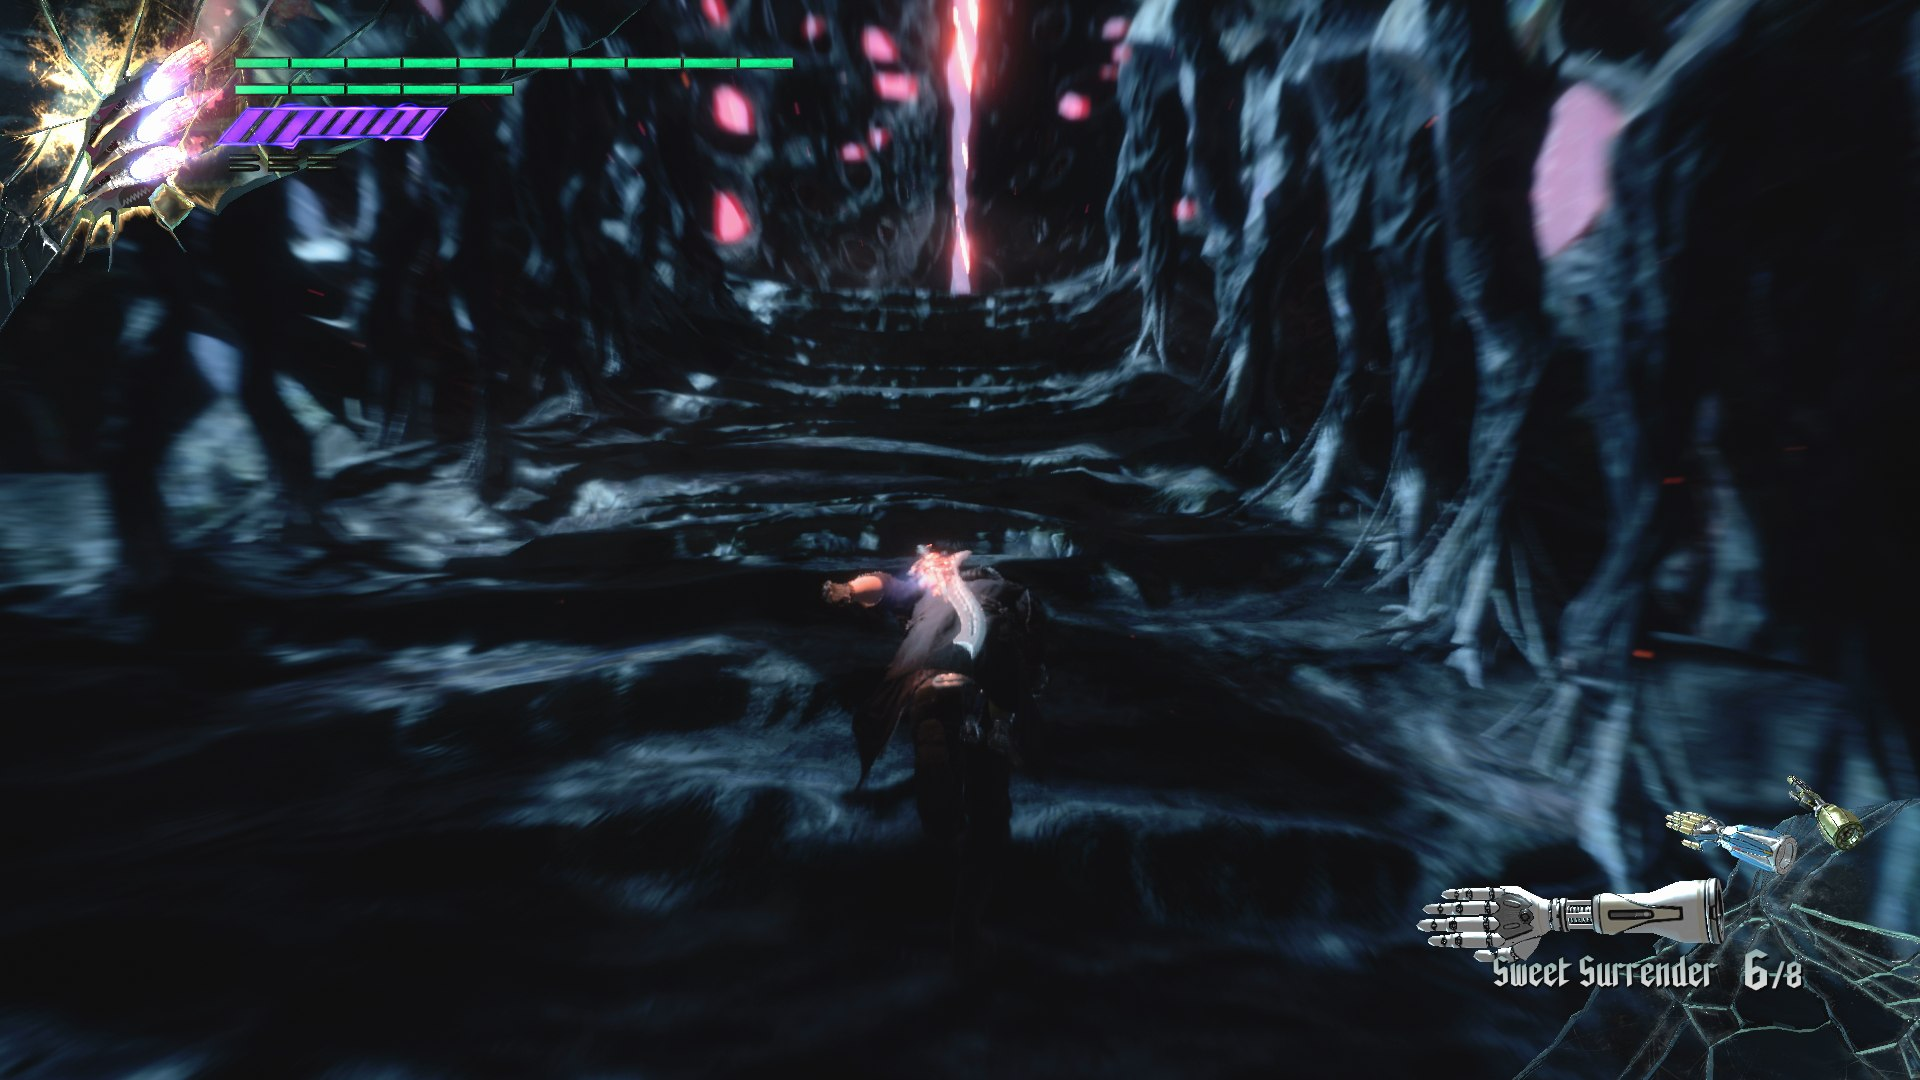 Devil May Cry 5 Tips - All the Essential Devil May Cry 5 Tips for SSS Rank Combos | USgamer